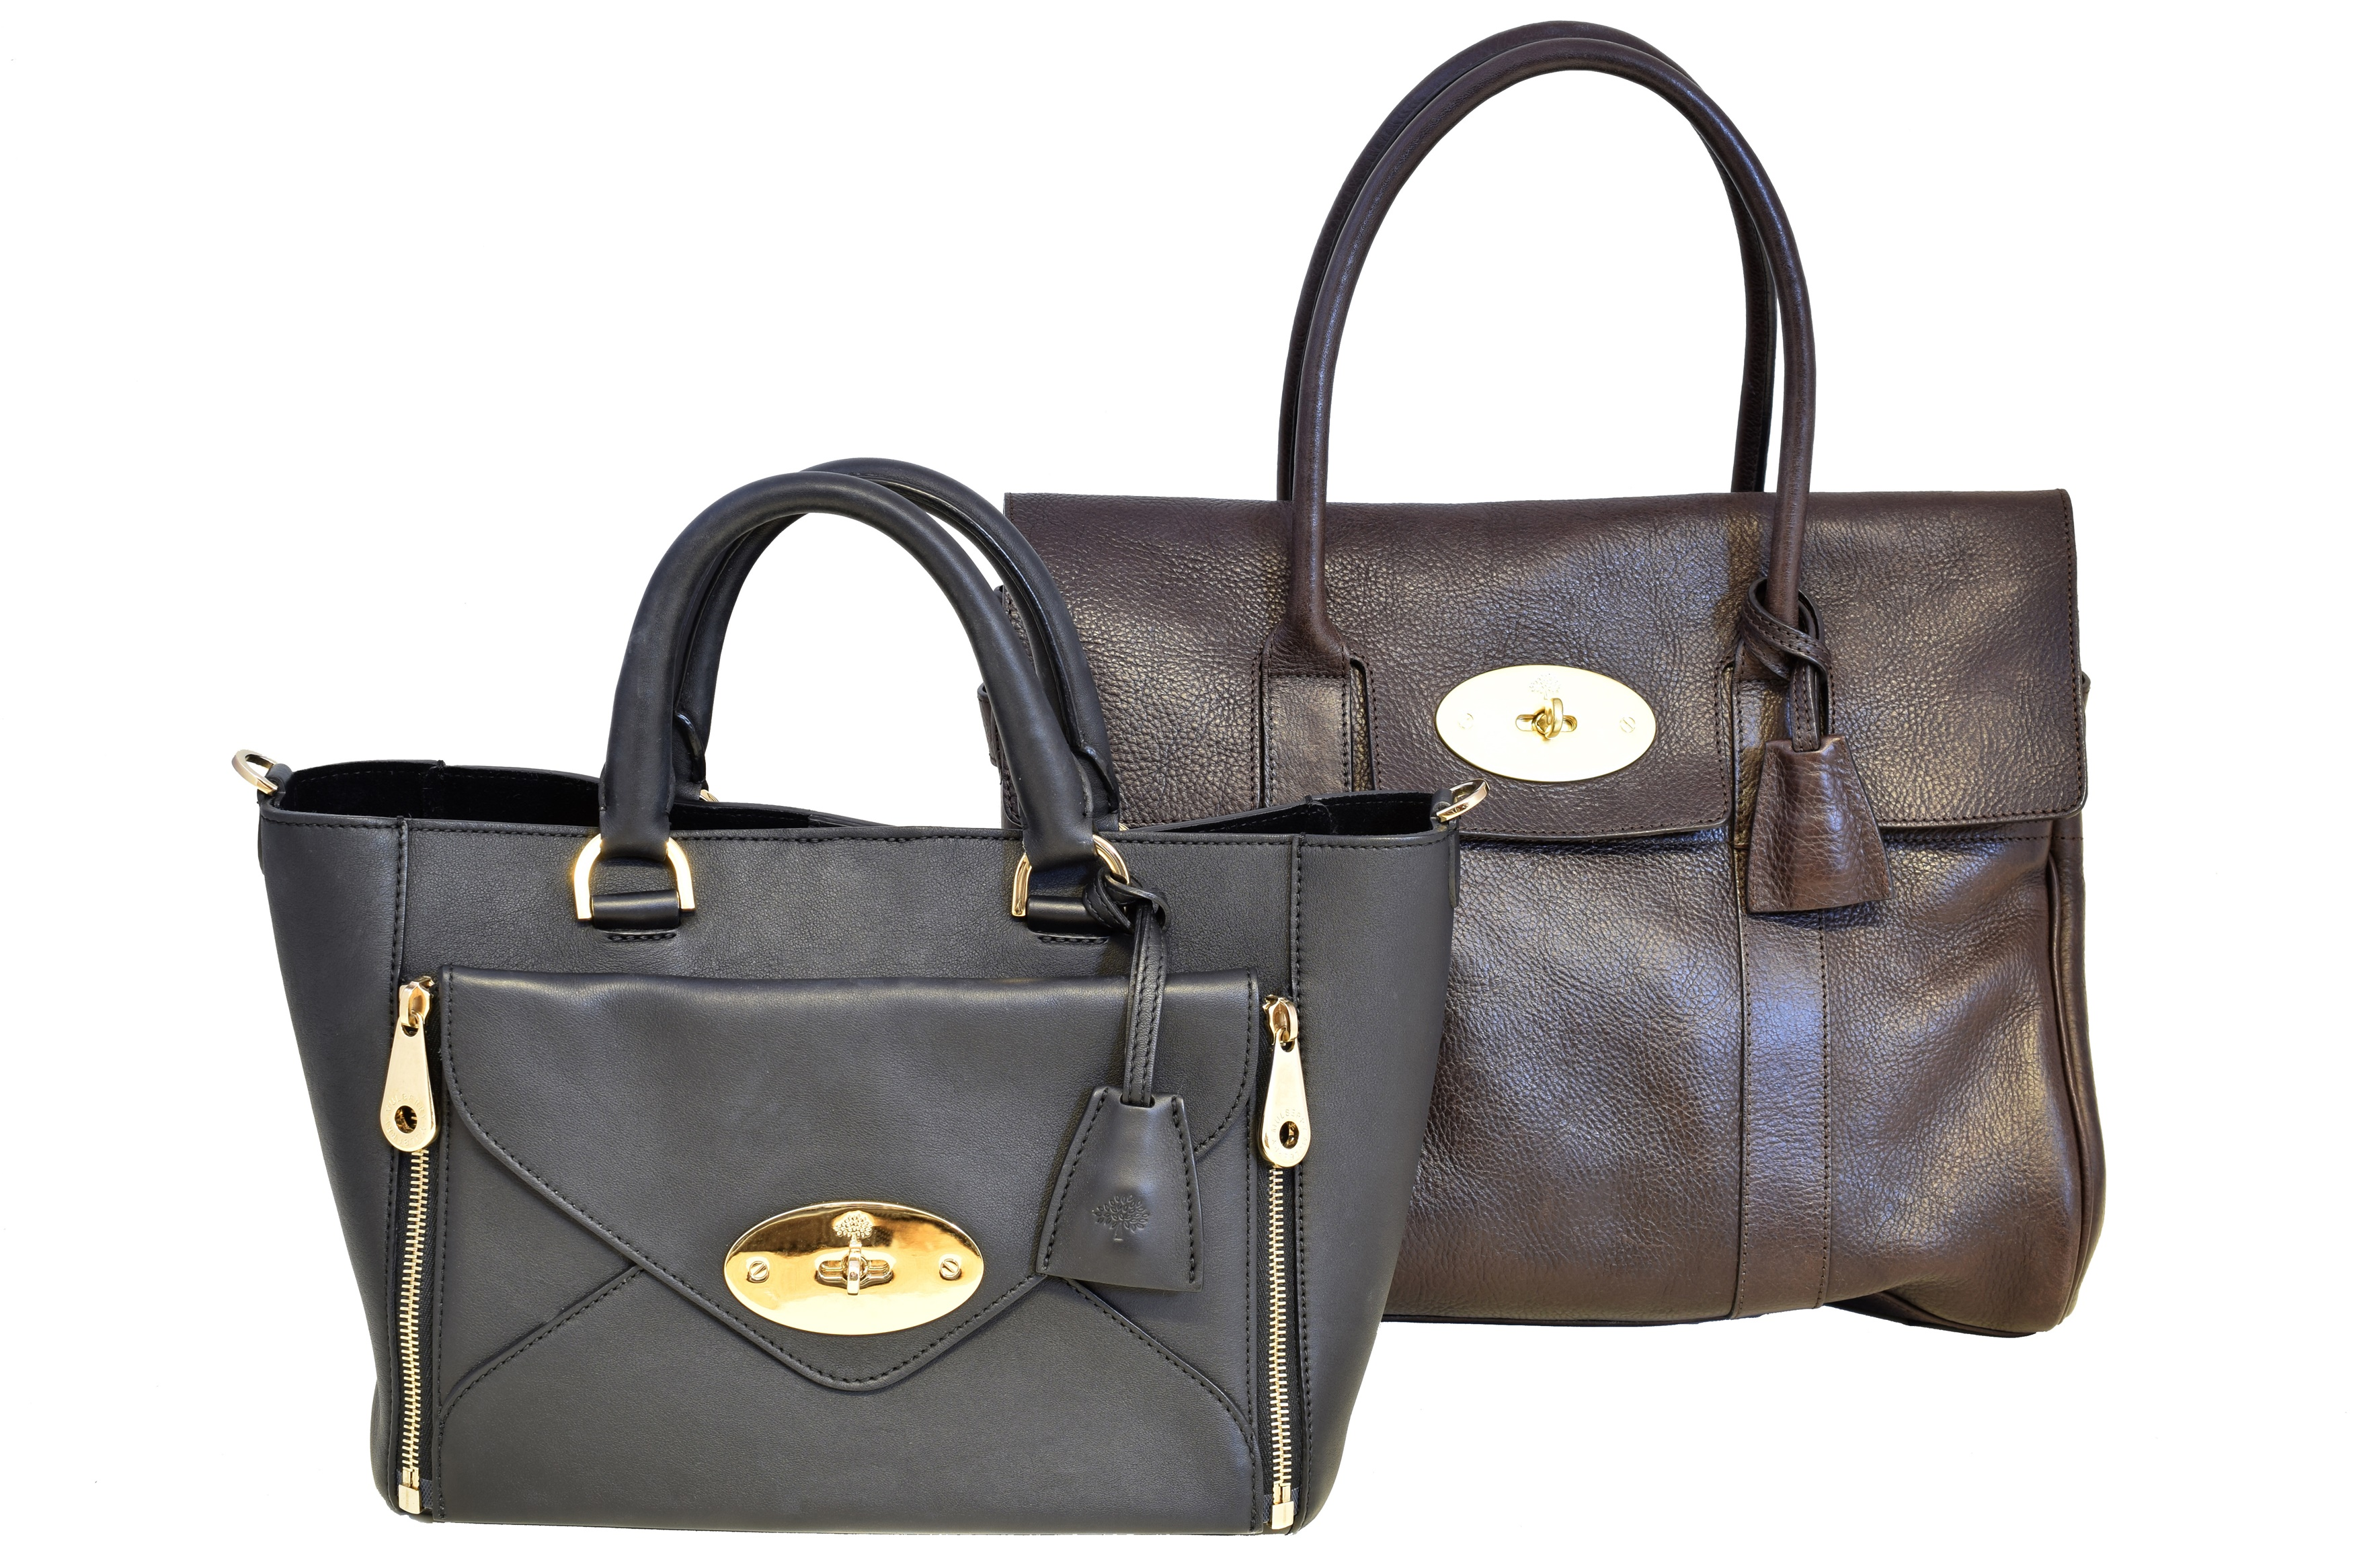 Mulberry Bayswater & Mulberry Willow Bag - Designer Handbag Auctions at Peter Wilson